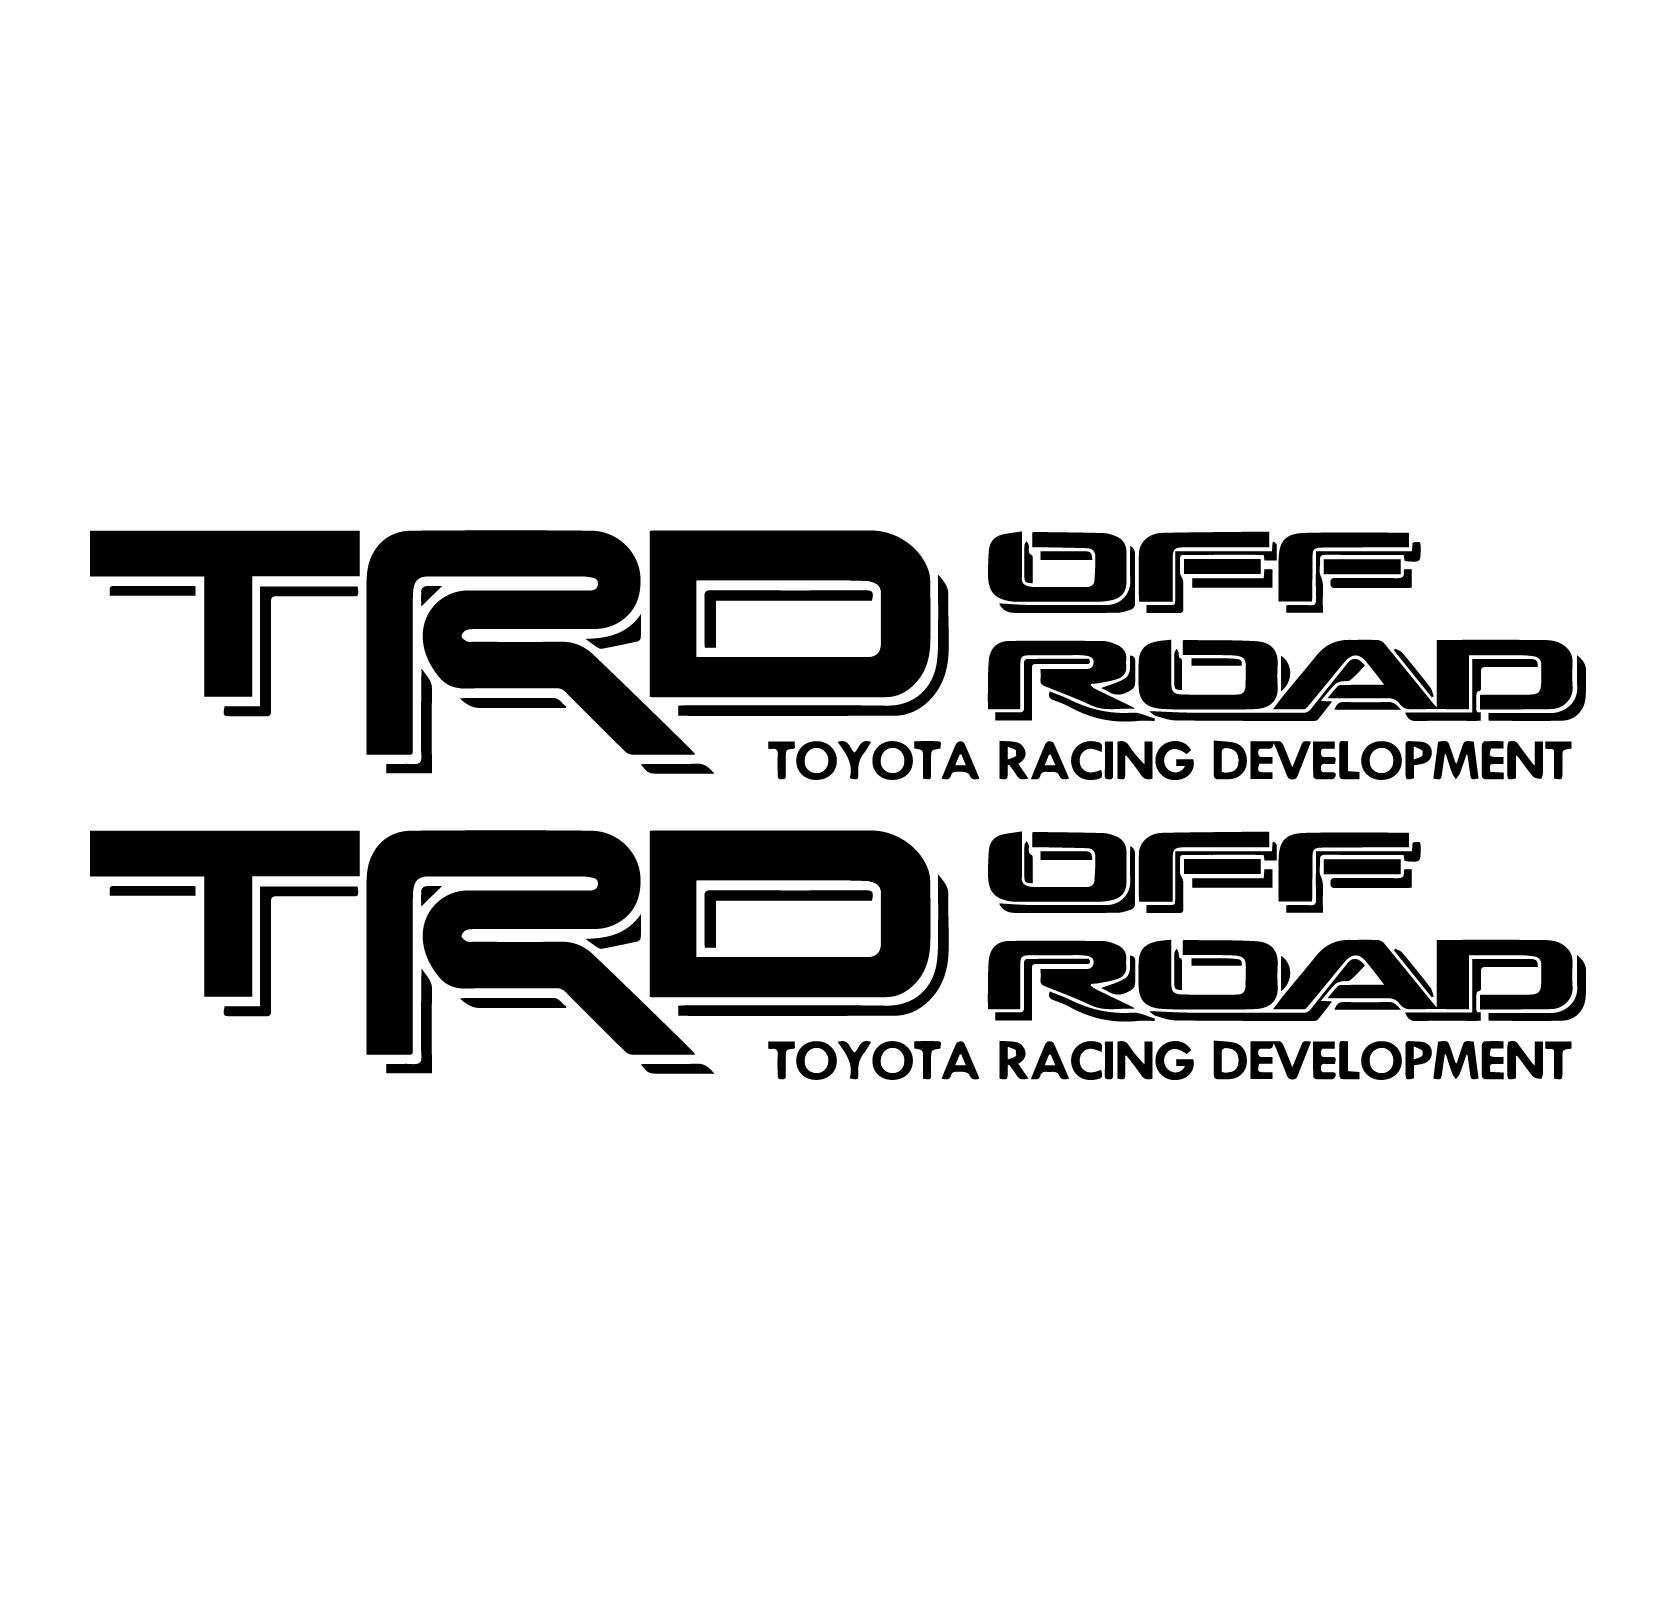 Toyota window decal sticker vinyl custom trd 4x4 tacoma tundra supra frs gt 86 by expressitdecals on etsy